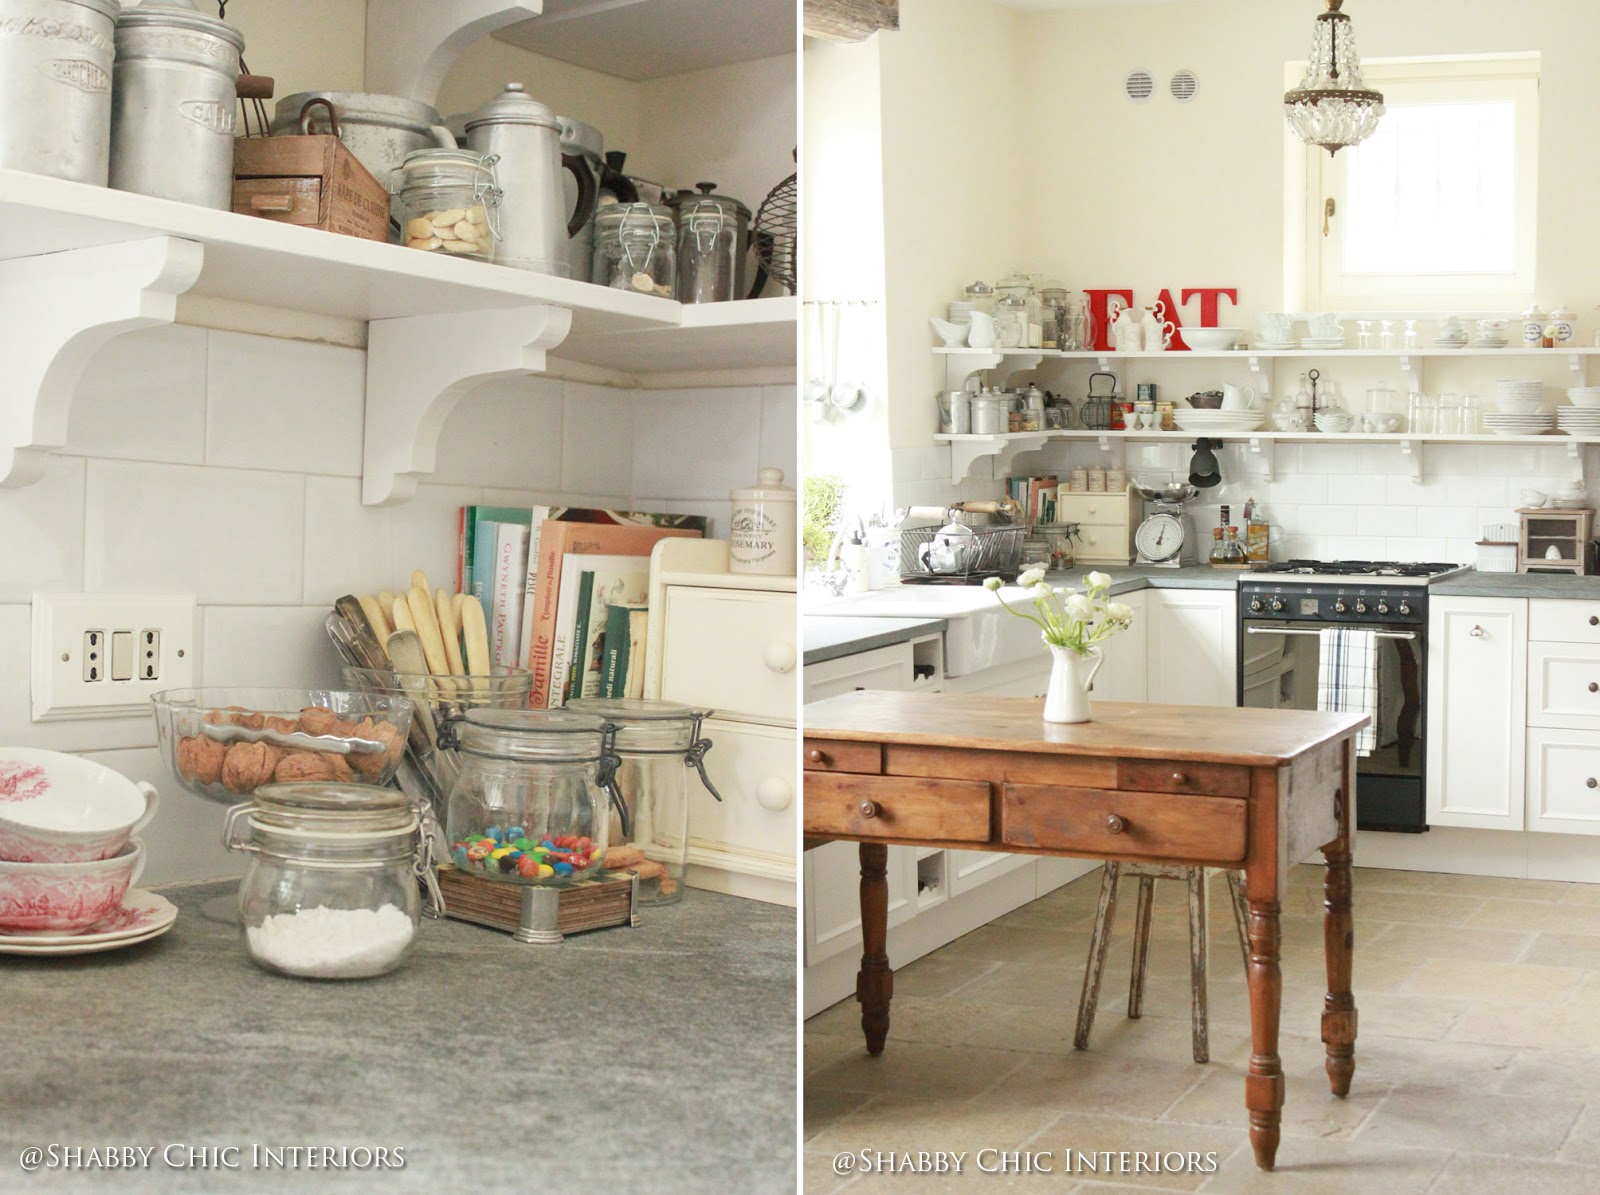 Restyling di una cucina ikea shabby chic interiors - Cucina country chic ...